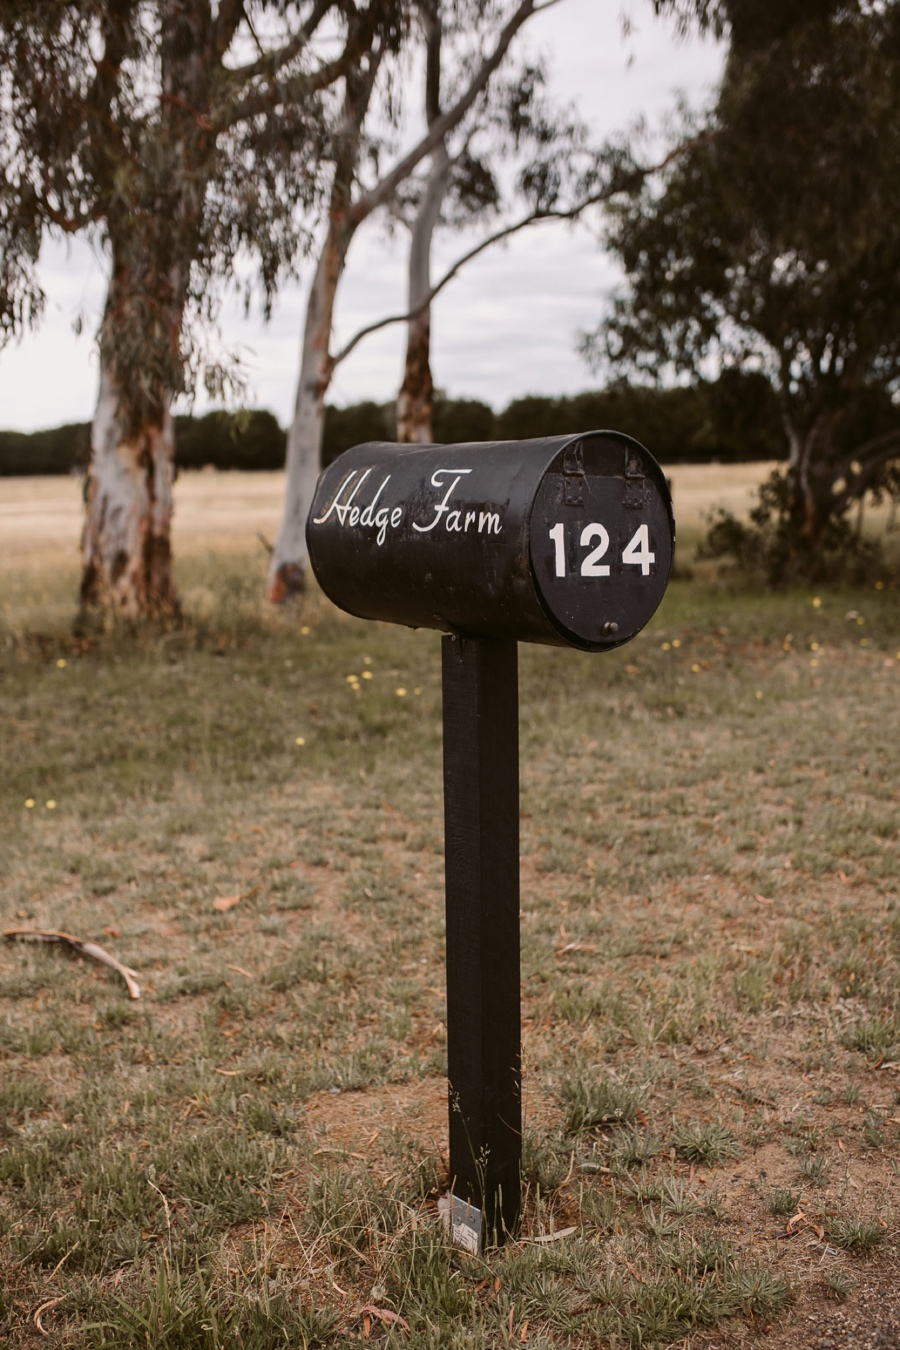 Hedgefarm Wedding Macedon Ranges Wedding Photography15.jpg